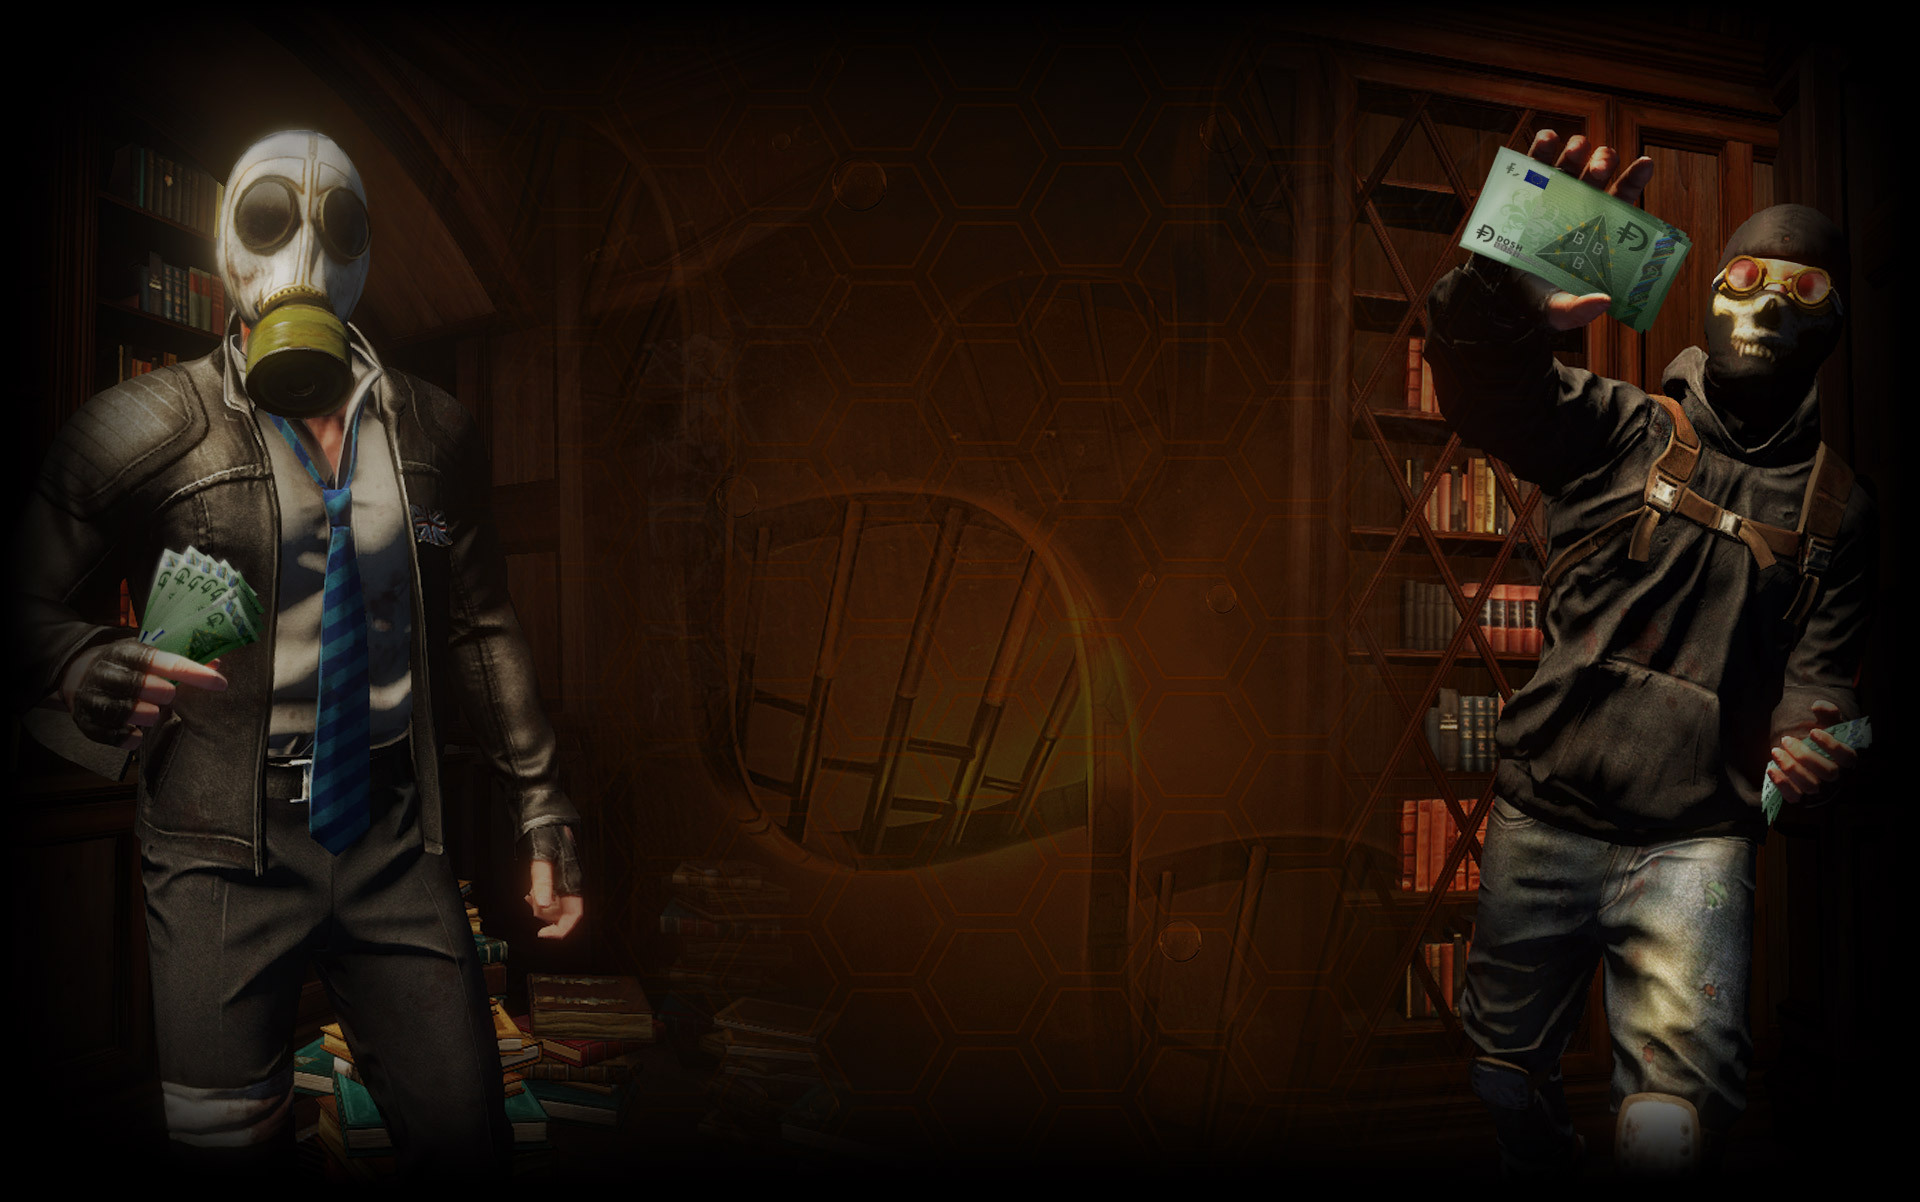 Image   Killing Floor 2 Background Foster And Scully | Steam Trading  Cards Wiki | FANDOM Powered By Wikia